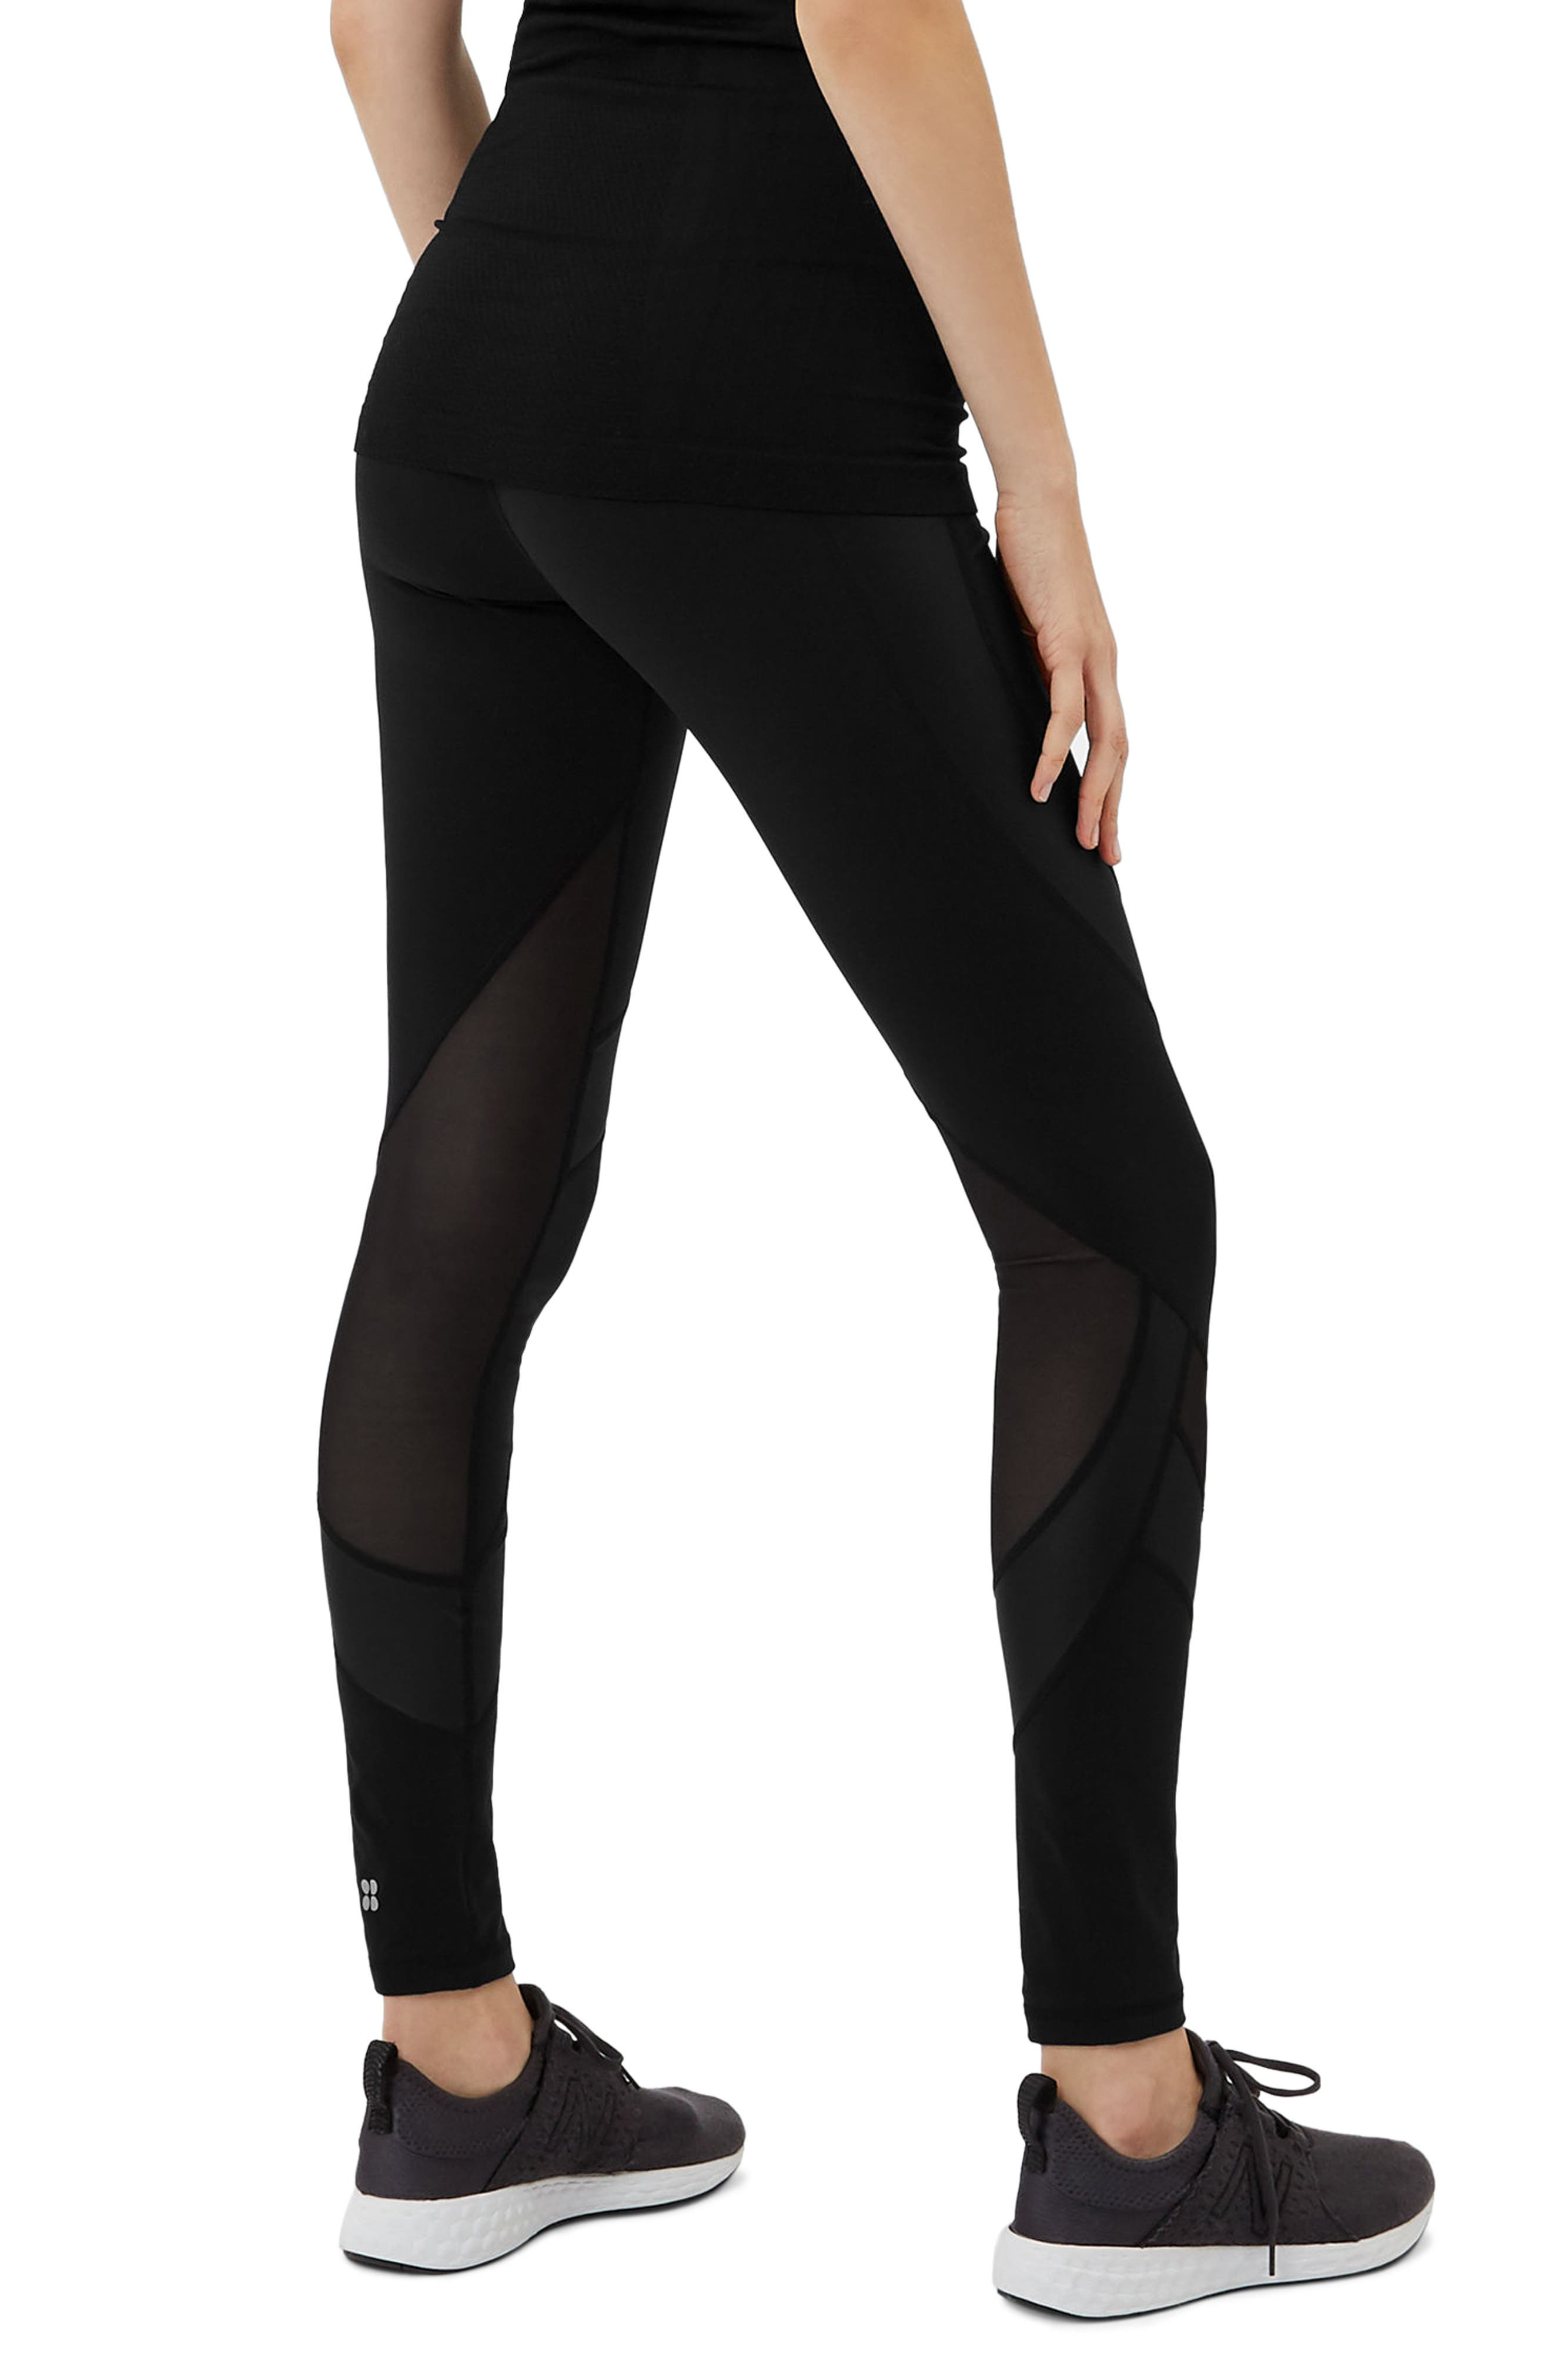 Wetlook Run Leggings,                             Alternate thumbnail 2, color,                             BLACK